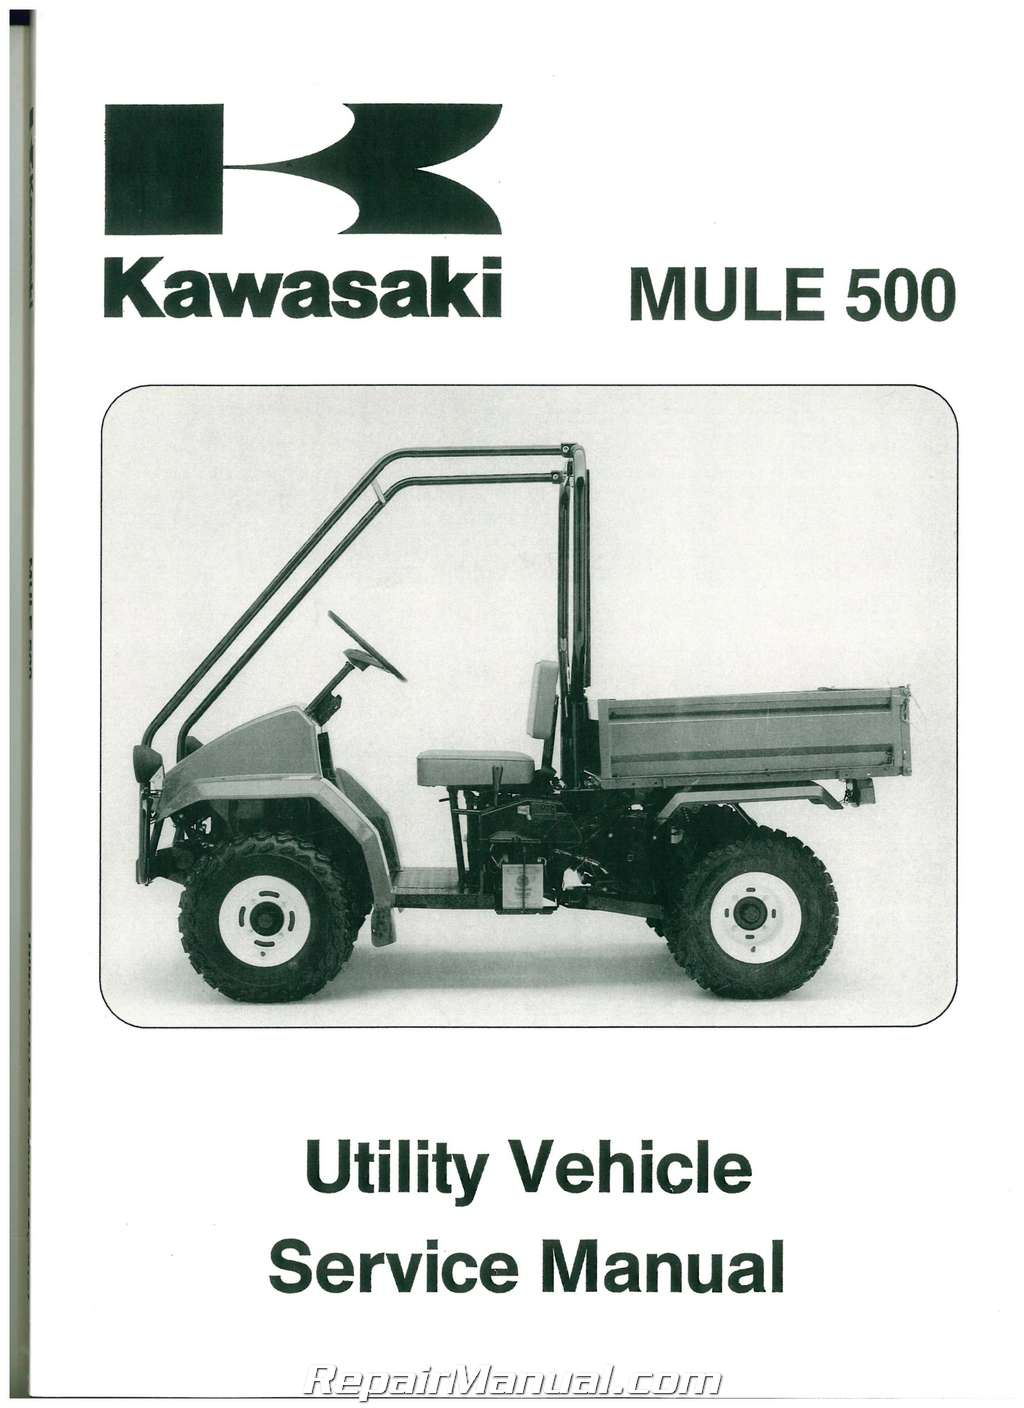 1990 Kawasaki Mule Wiring Diagram | Wiring Diagram on